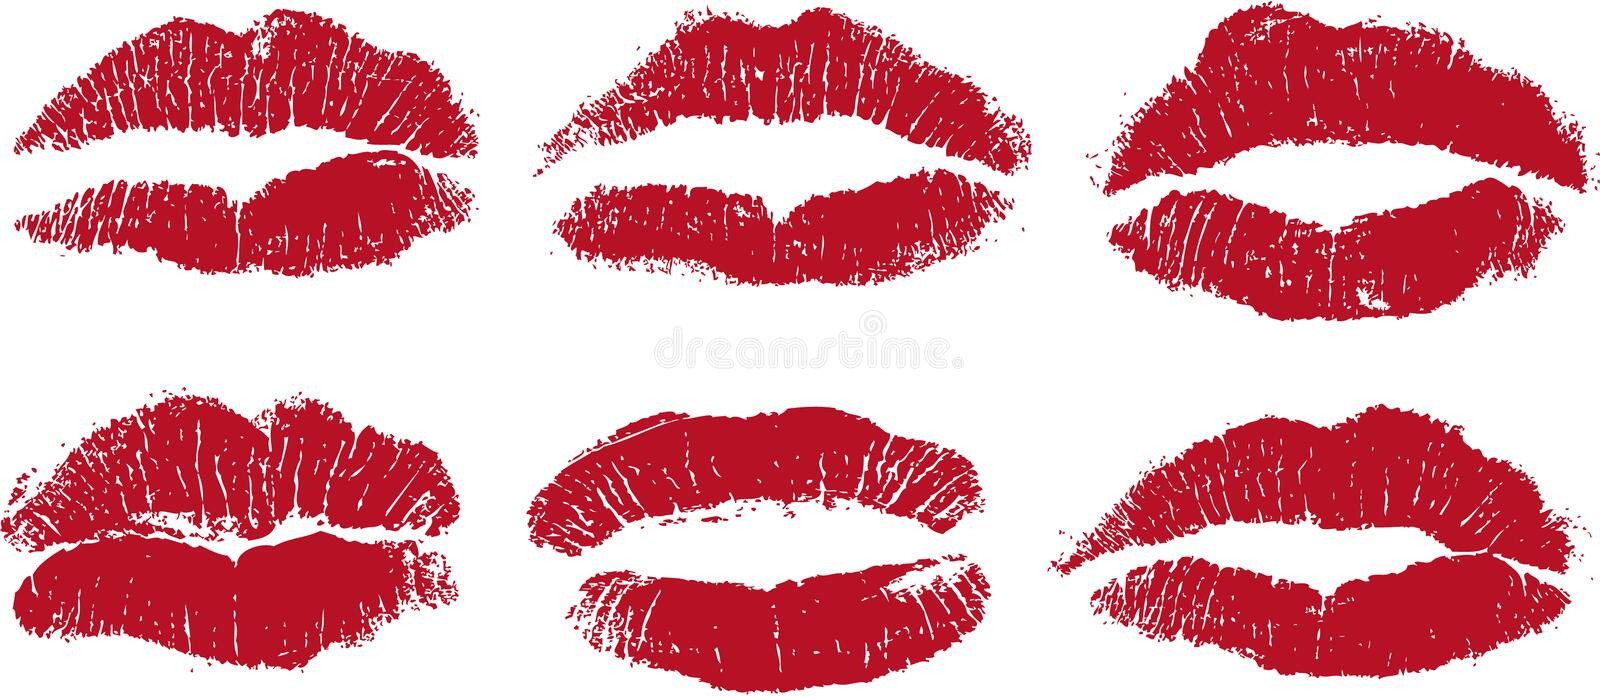 lip kisses in red royalty free illustration